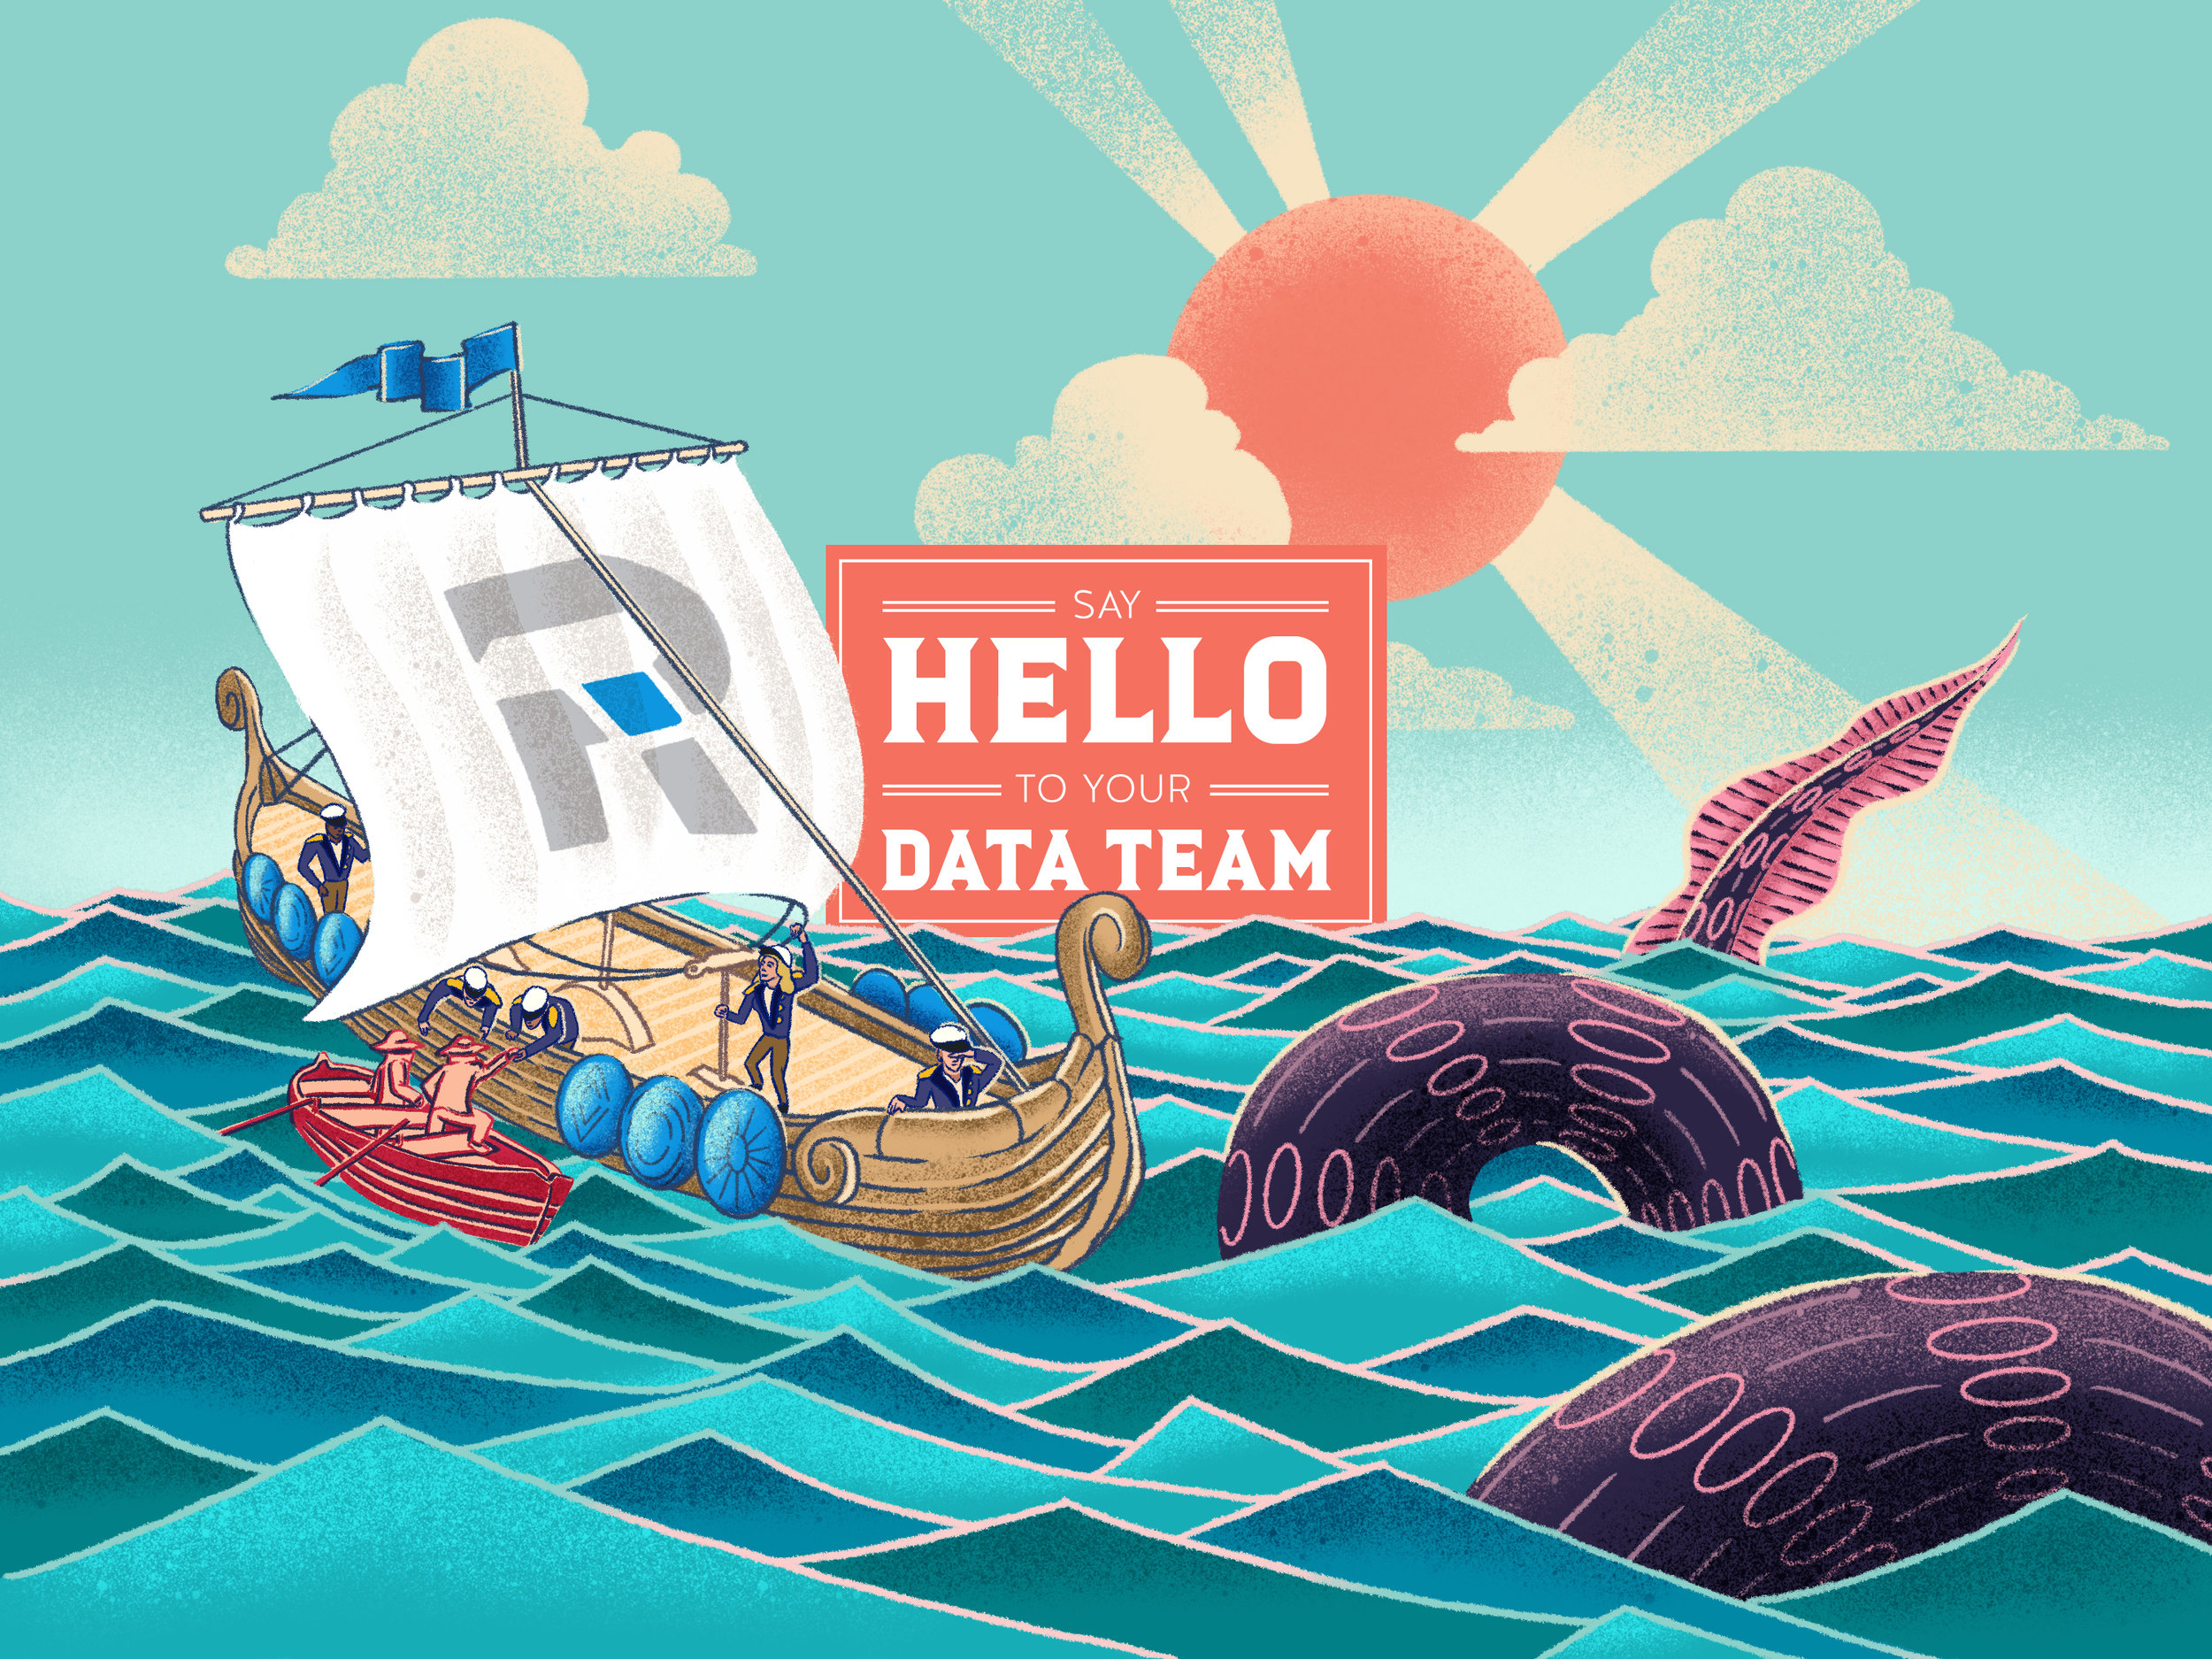 Say Hello to your Data Team